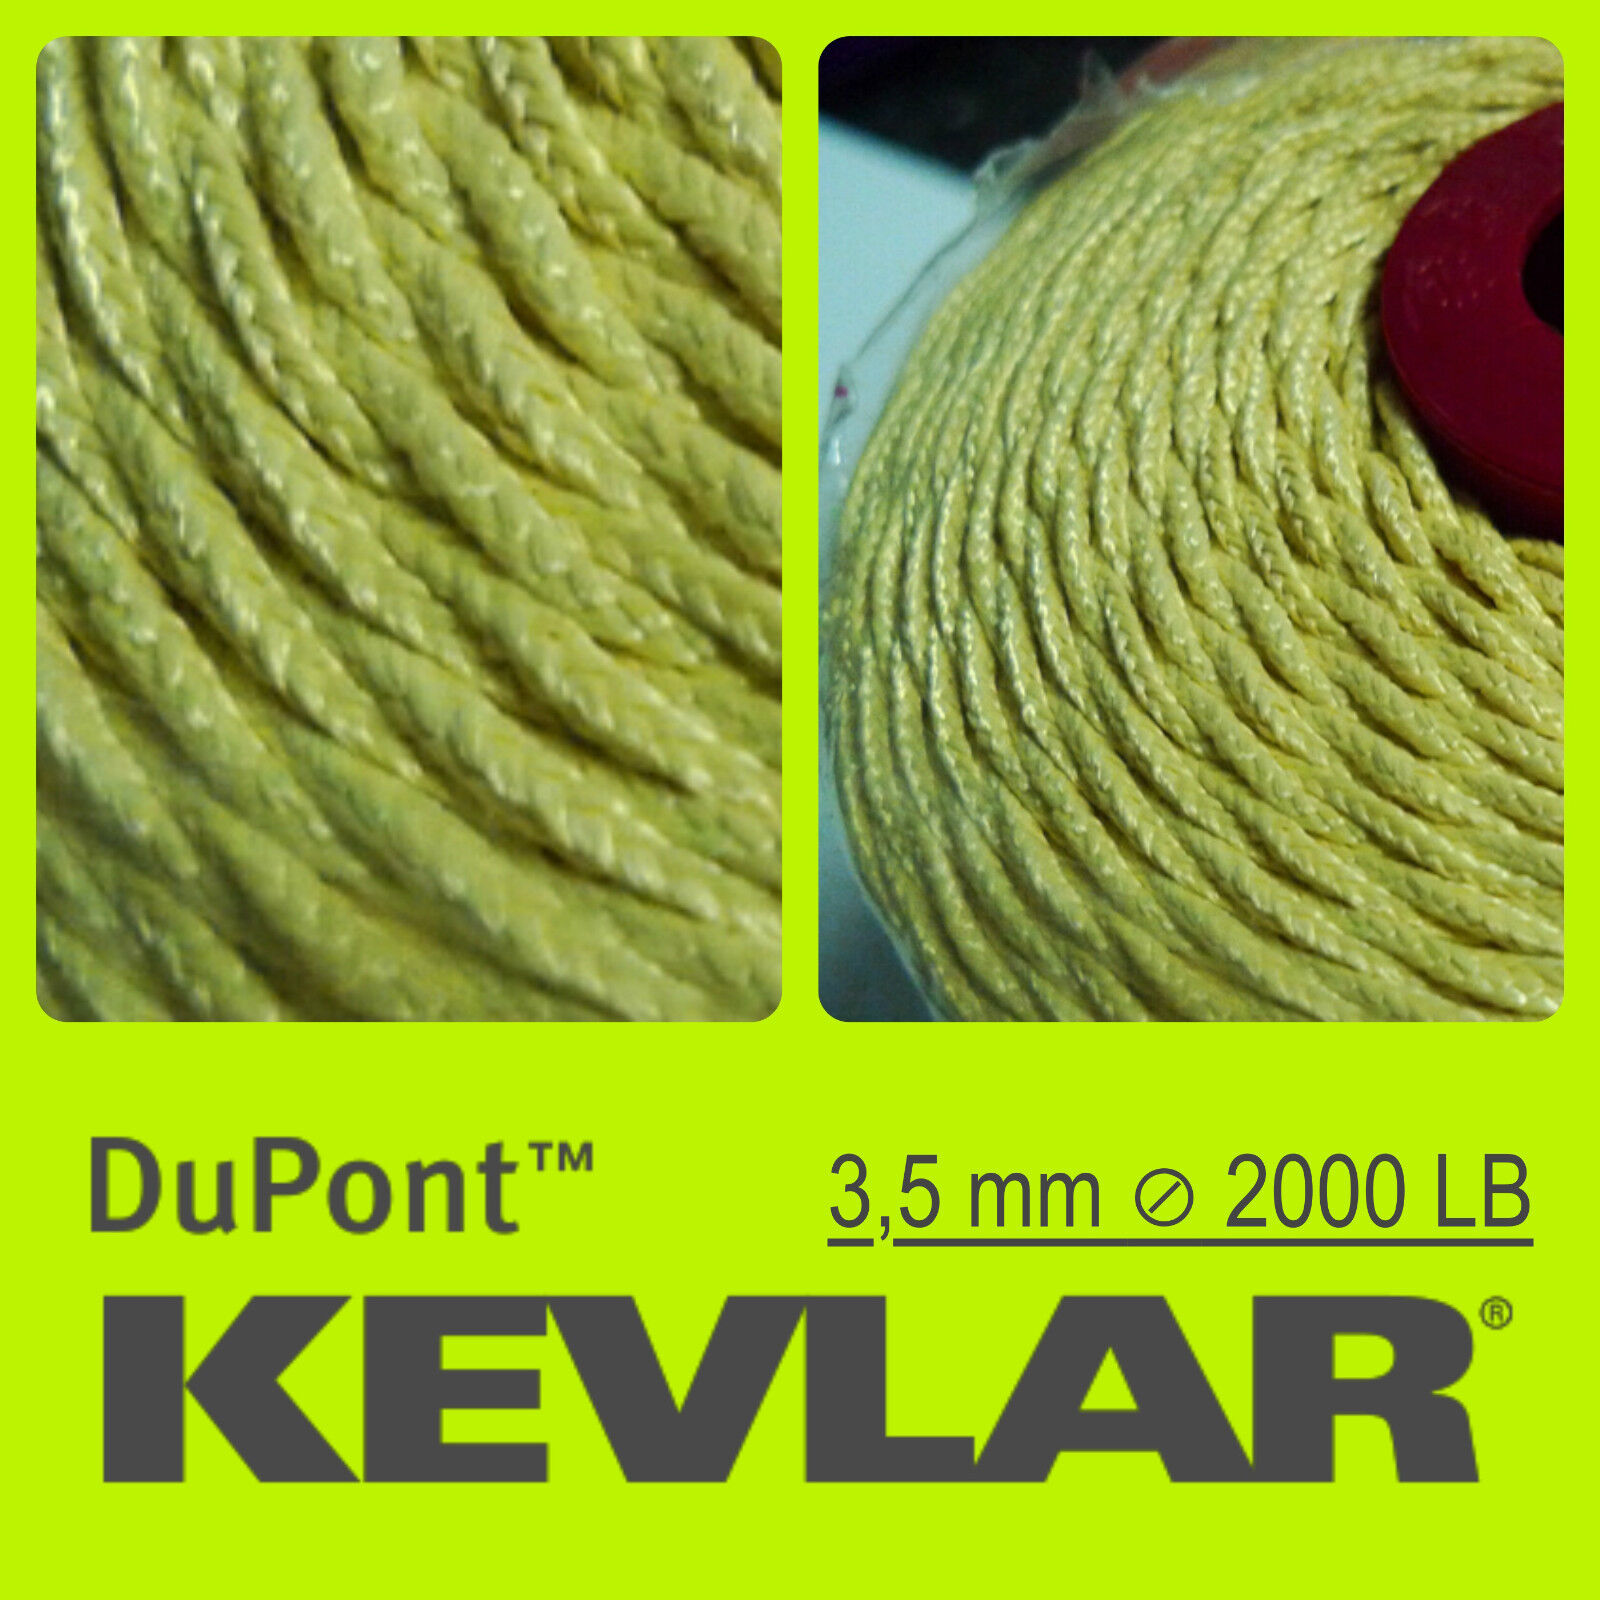 100% KEVLAR DuPont TRIP LINE CORD BRAIDED WIRE LINE CORD LINE FOR KITE FISHING PAINTBALL b7a7a1